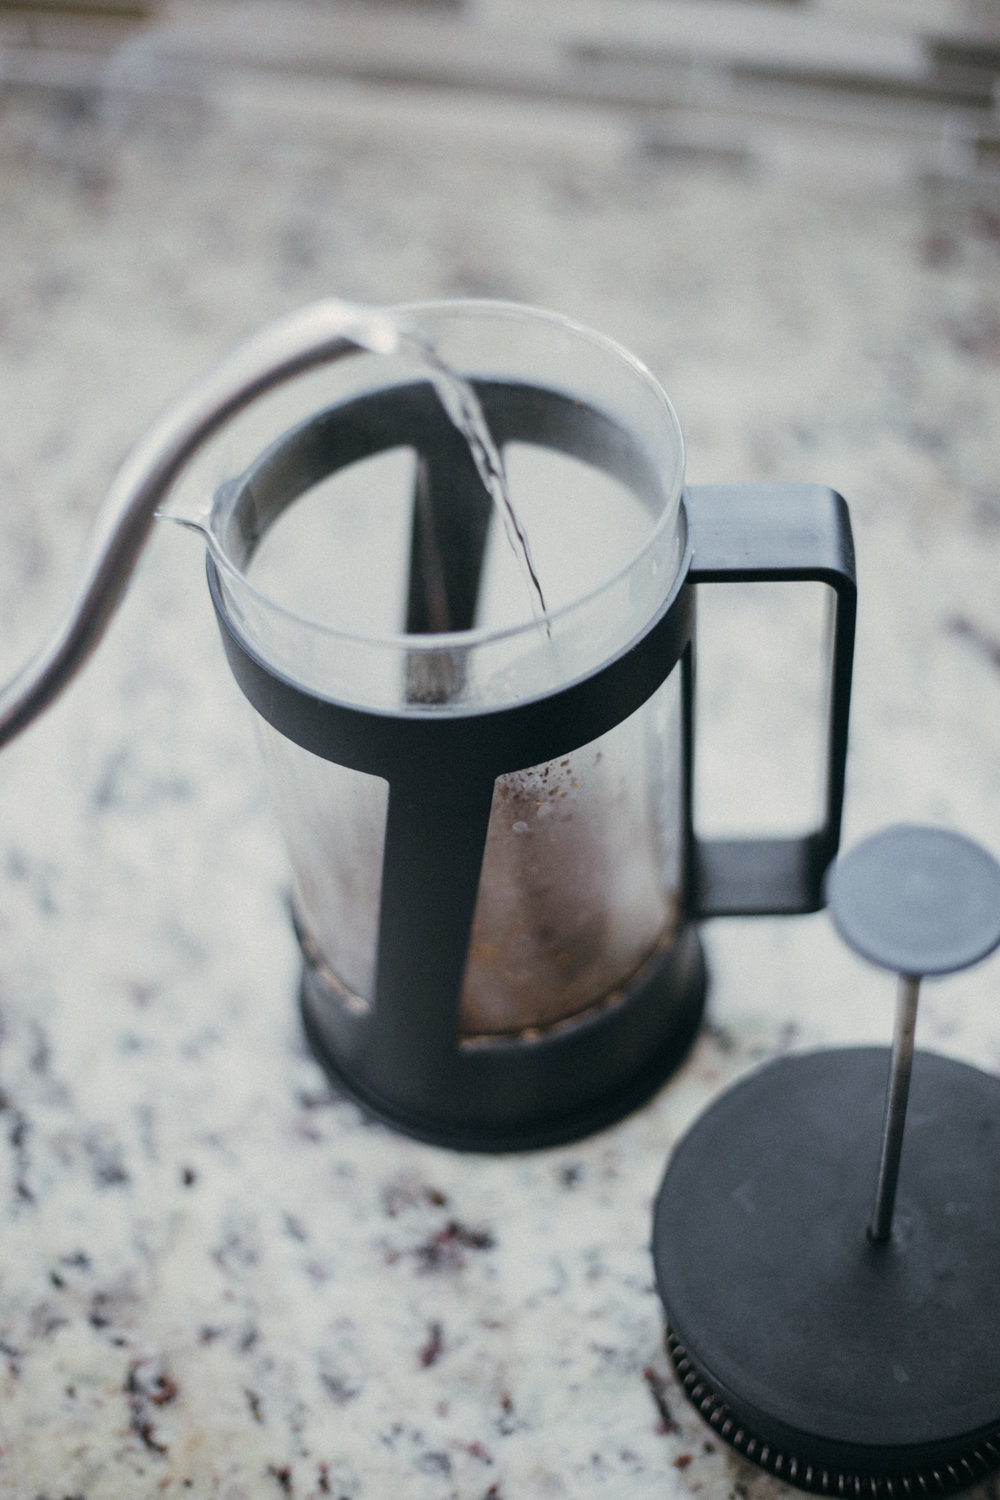 Pour boiling water in french press. Make sure to use coarse coffee grounds.